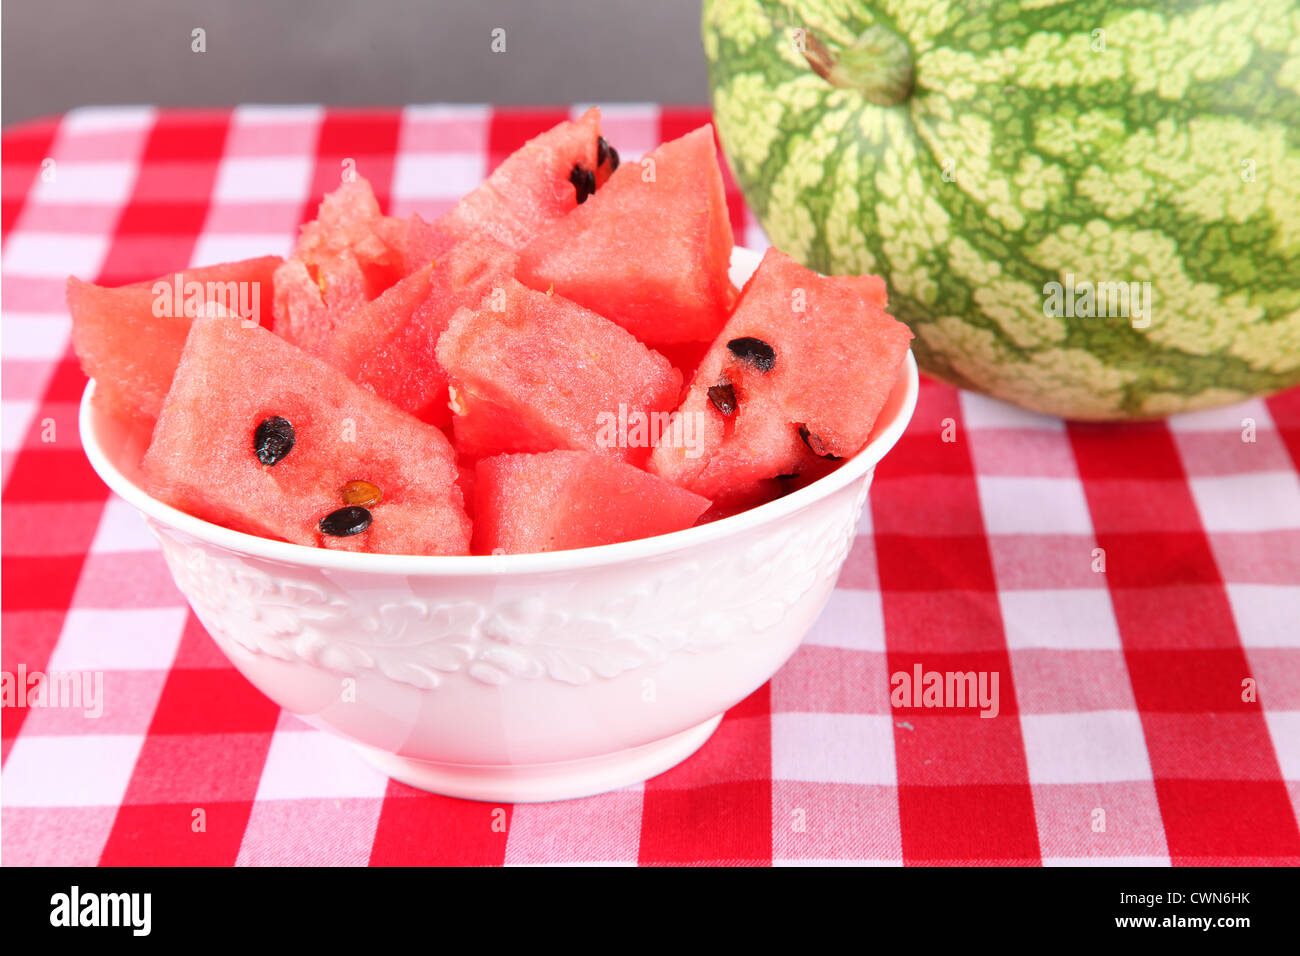 Pieces of fresh cut up watermelon in a white bowl on a gingham tablecloth. - Stock Image